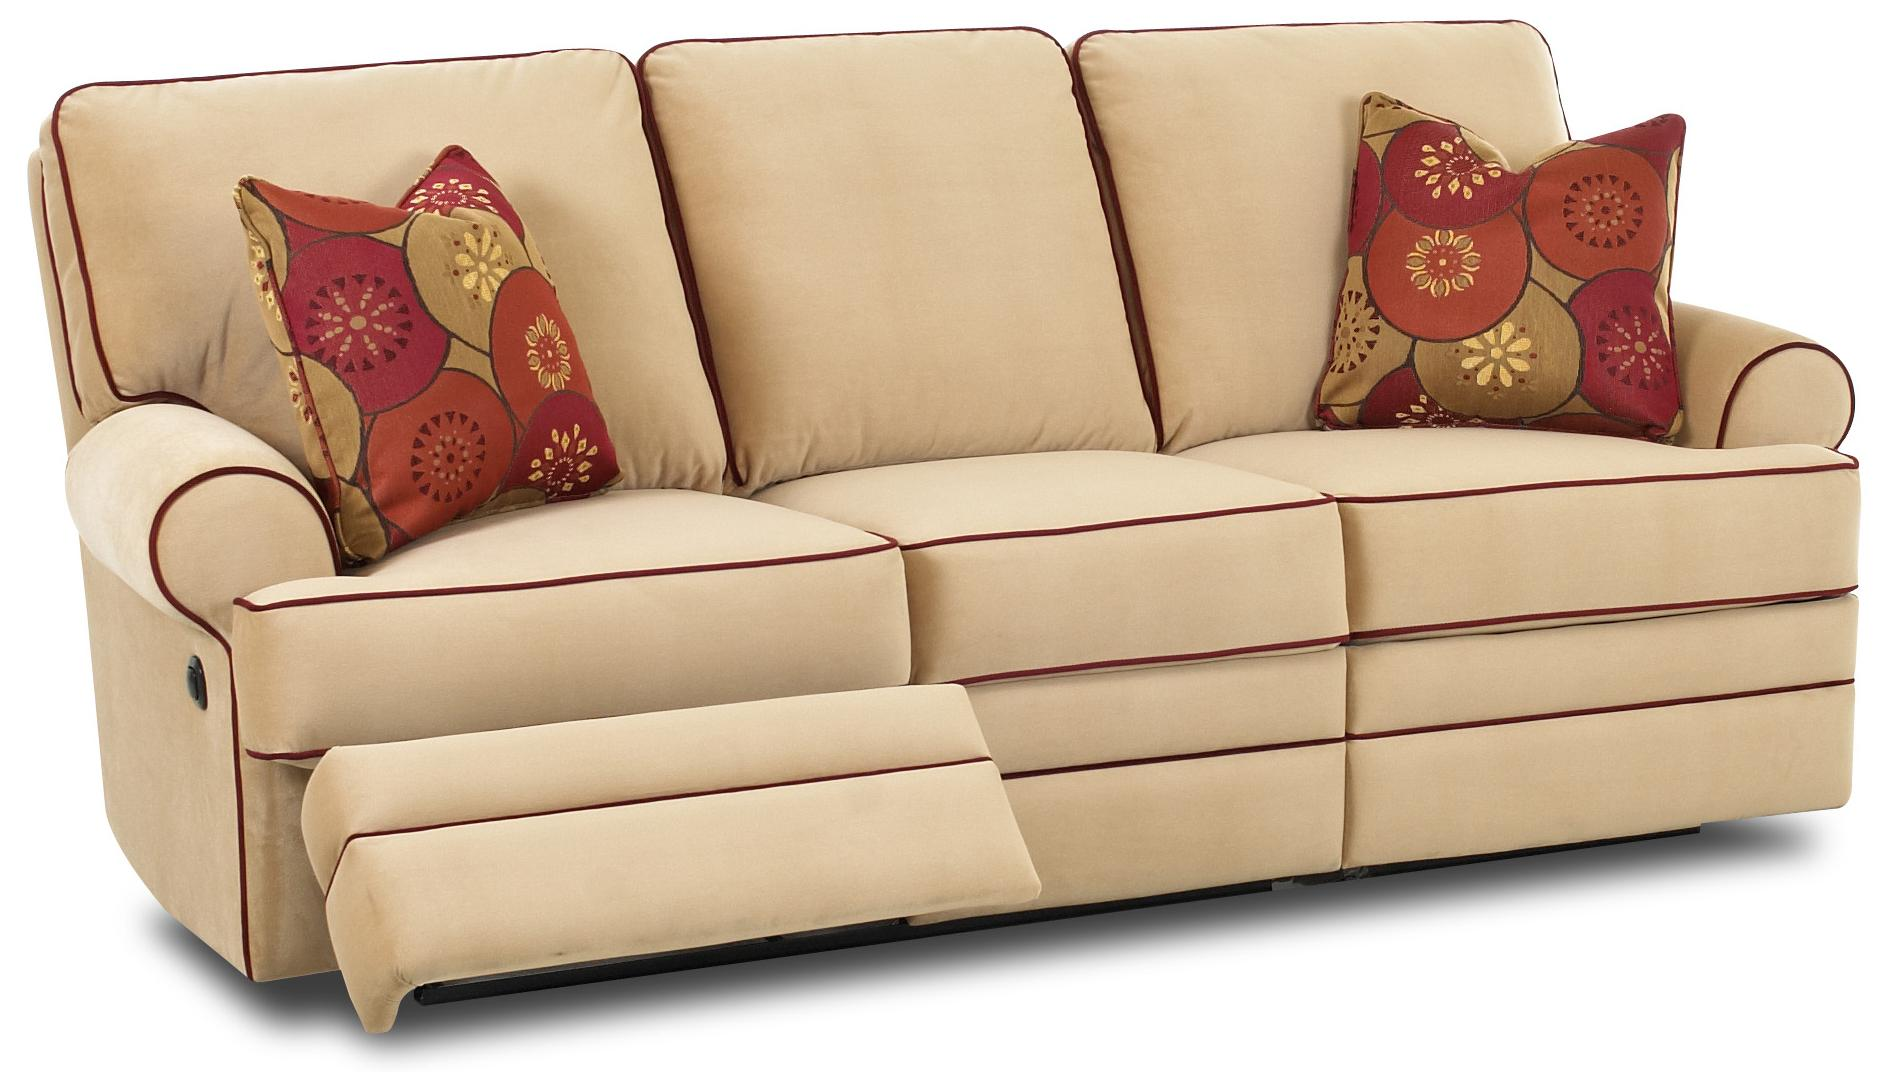 klaussner grand power reclining sofa lancaster restoration hardware dual by wolf and gardiner